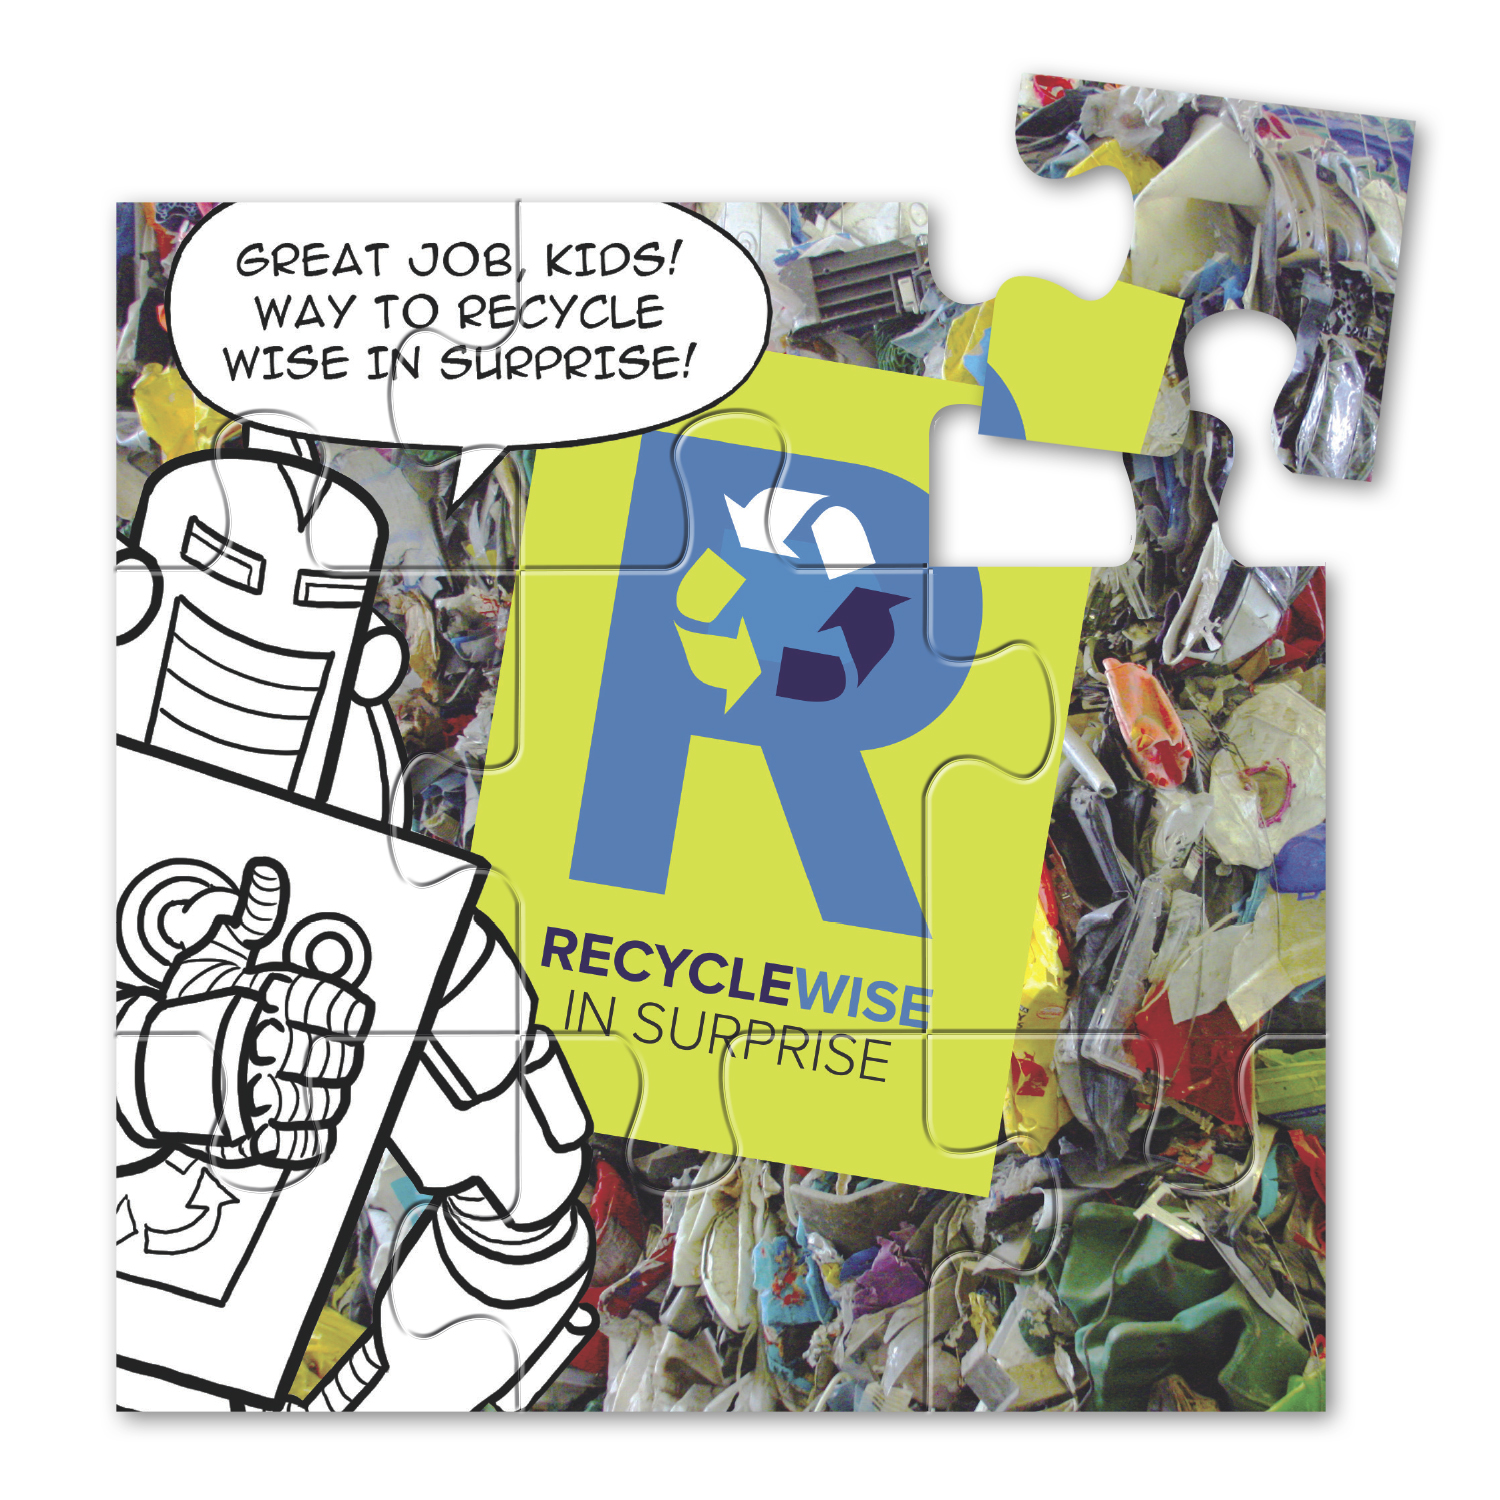 "• WORD09 Puzzle Magnet, 5.375"" x 5.375"", .020 thickness  • 1,000 magnets being given out to kids in Surprise, AZ to raise awareness on the importance of recycling."